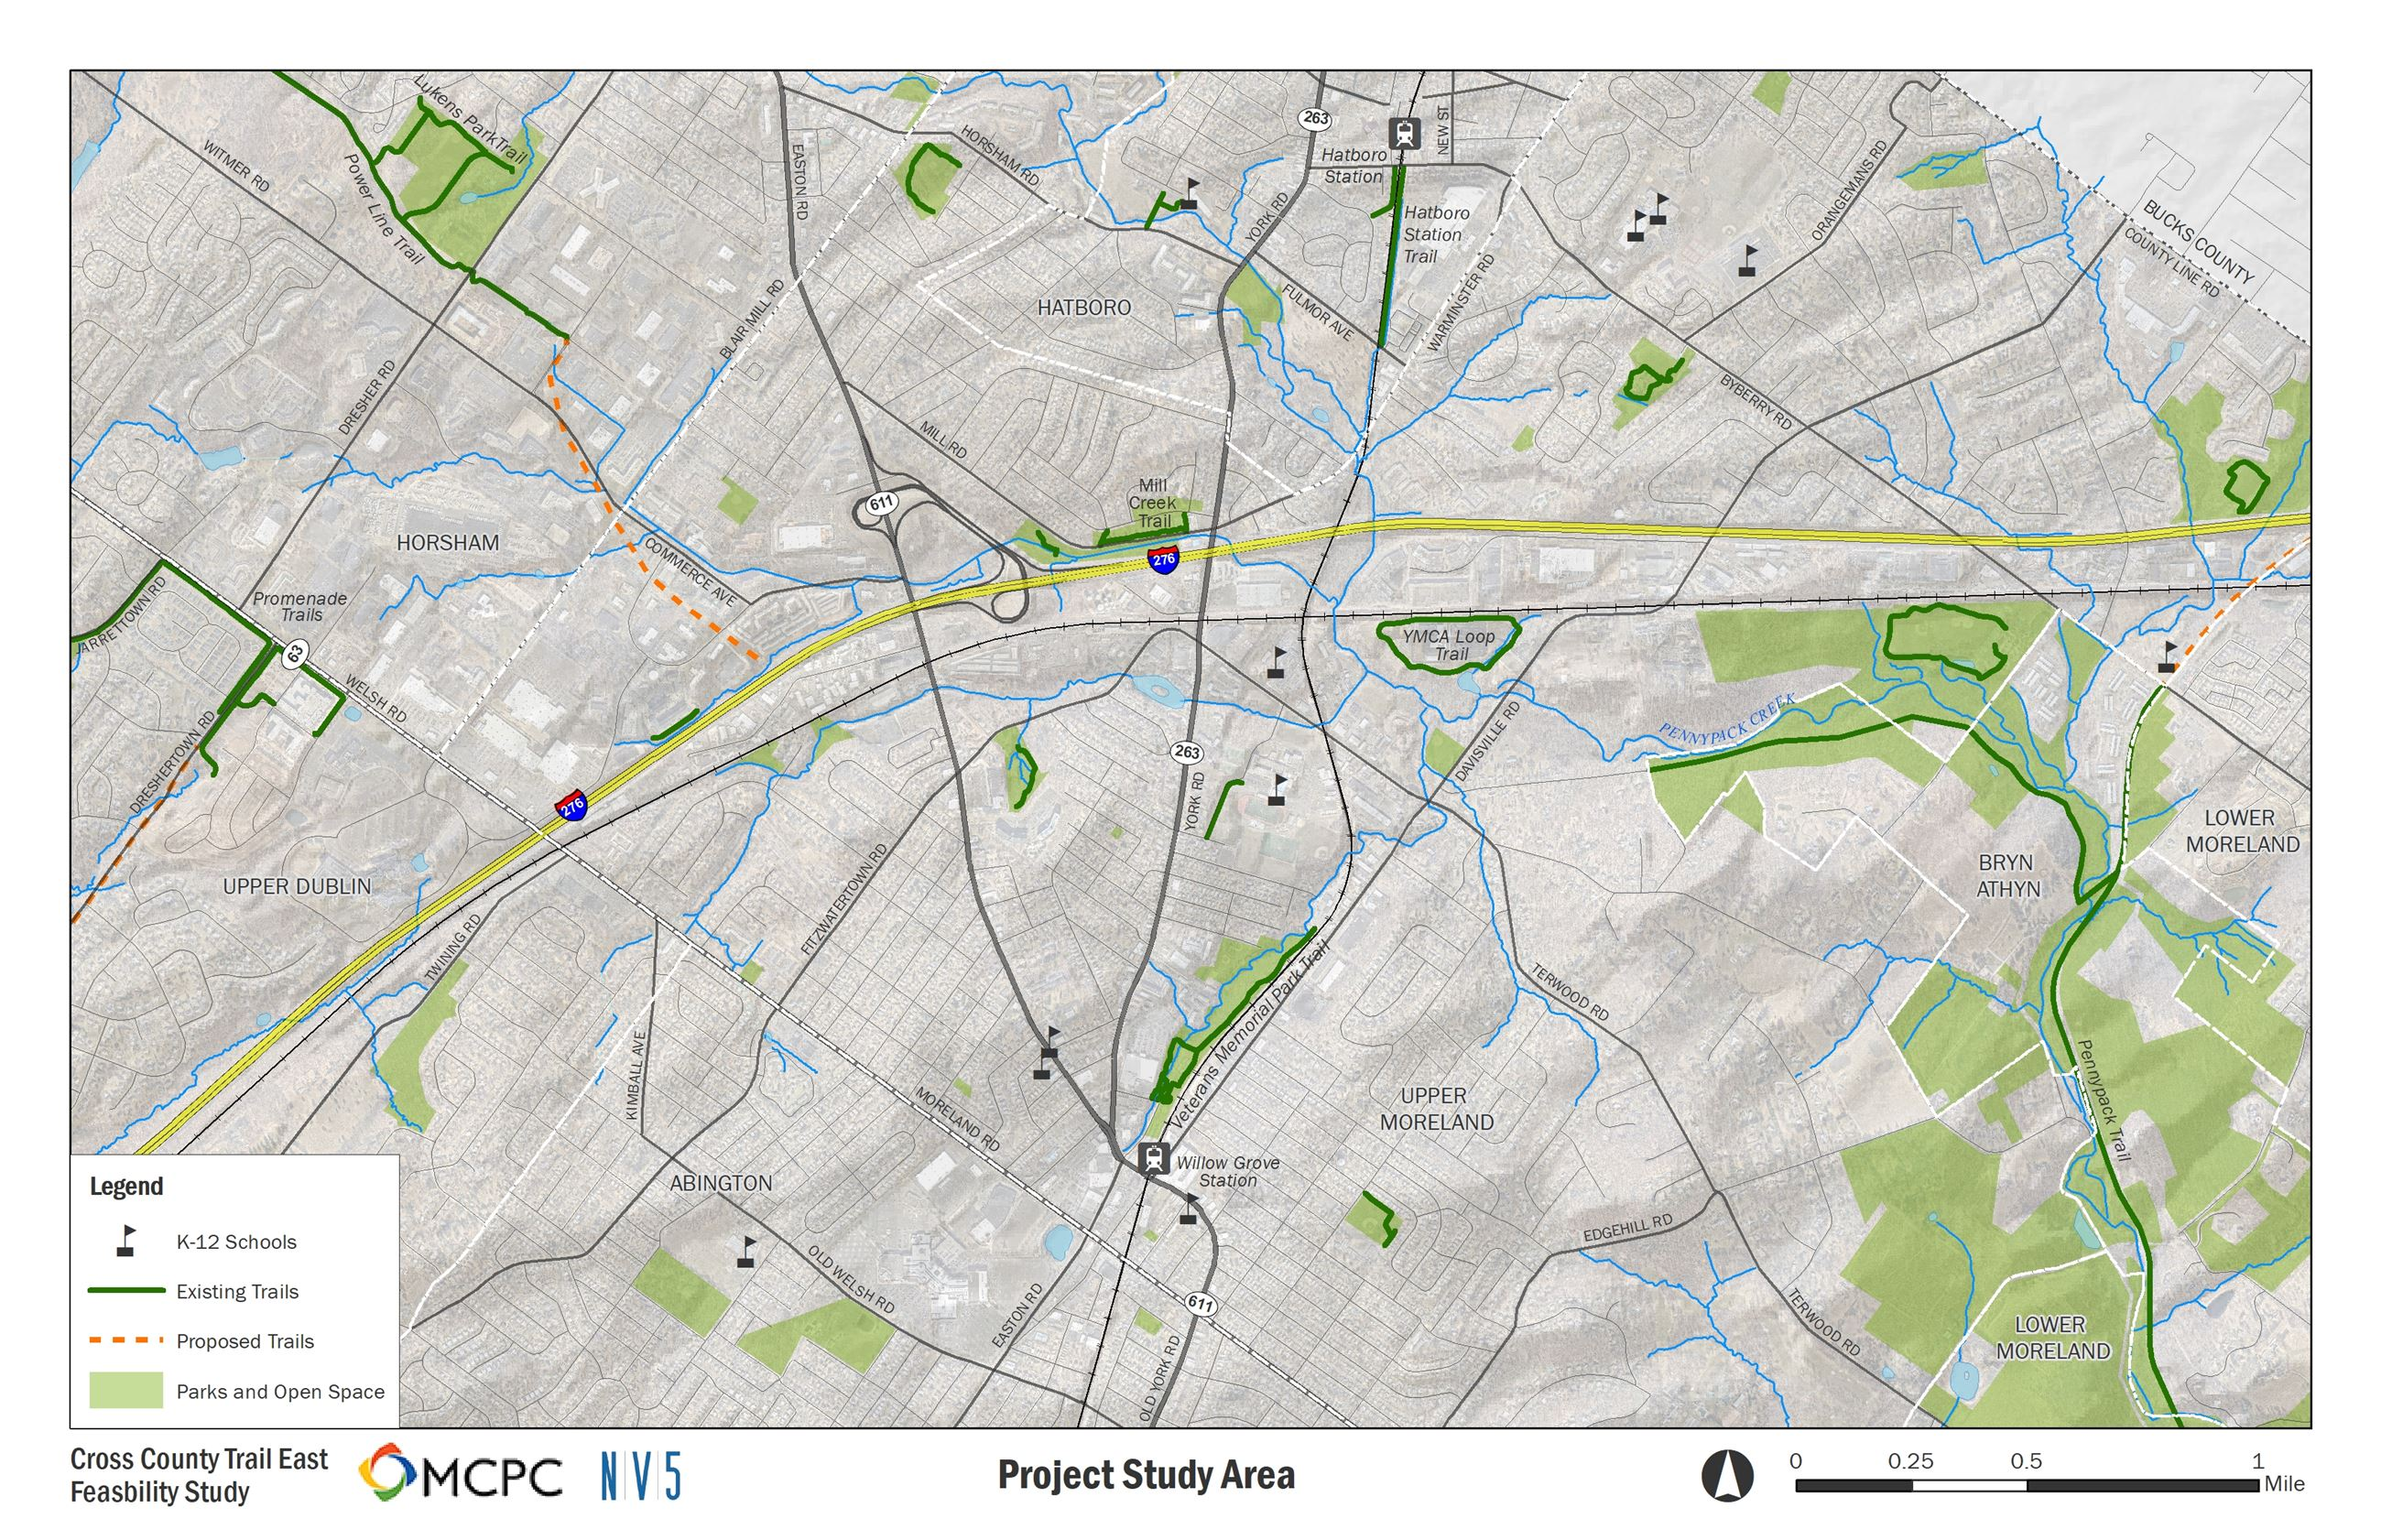 Cross County Trail feasibility study project map